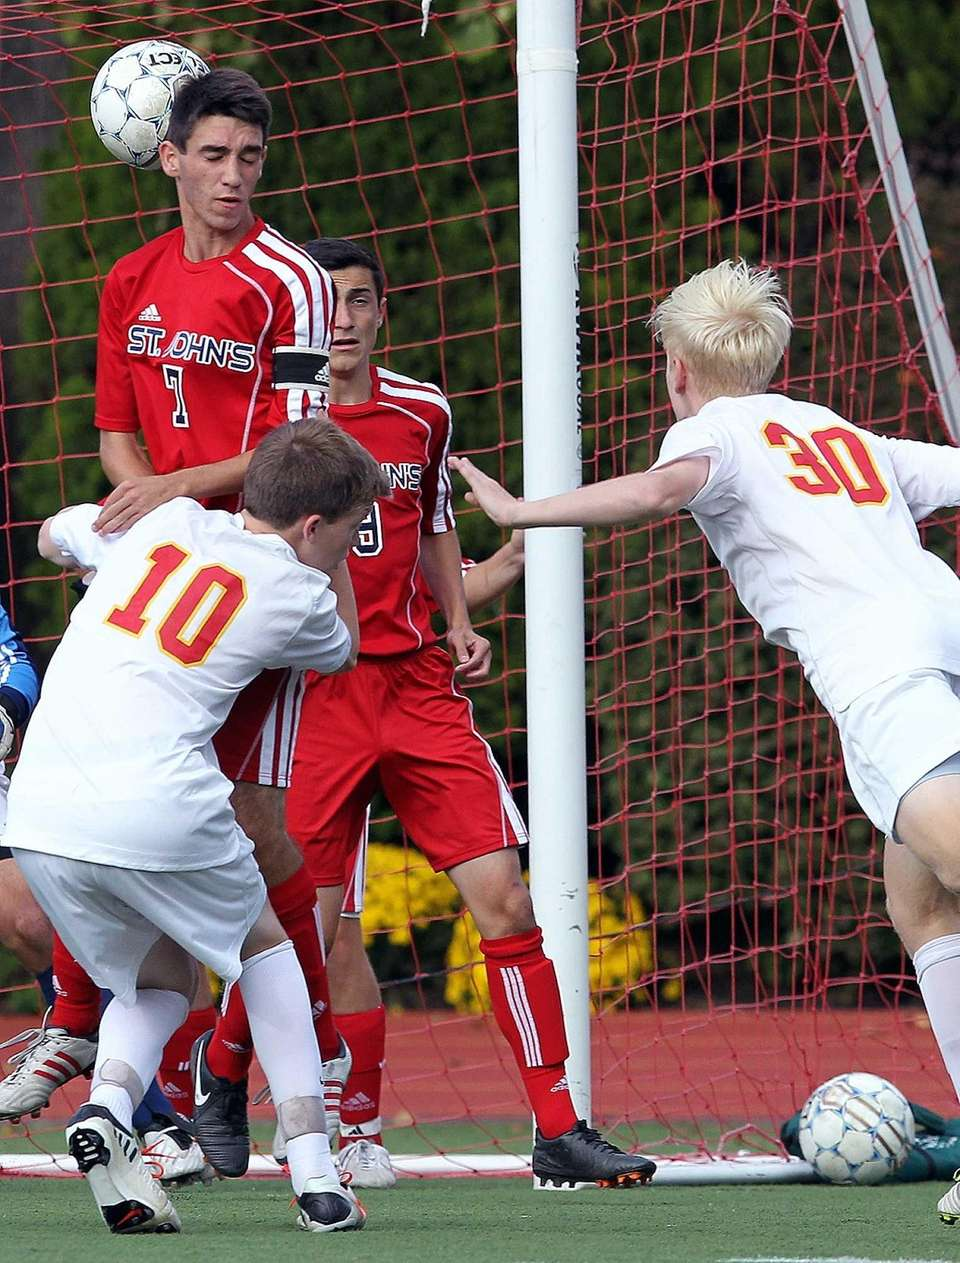 Chaminade's James Brady scores with a header against